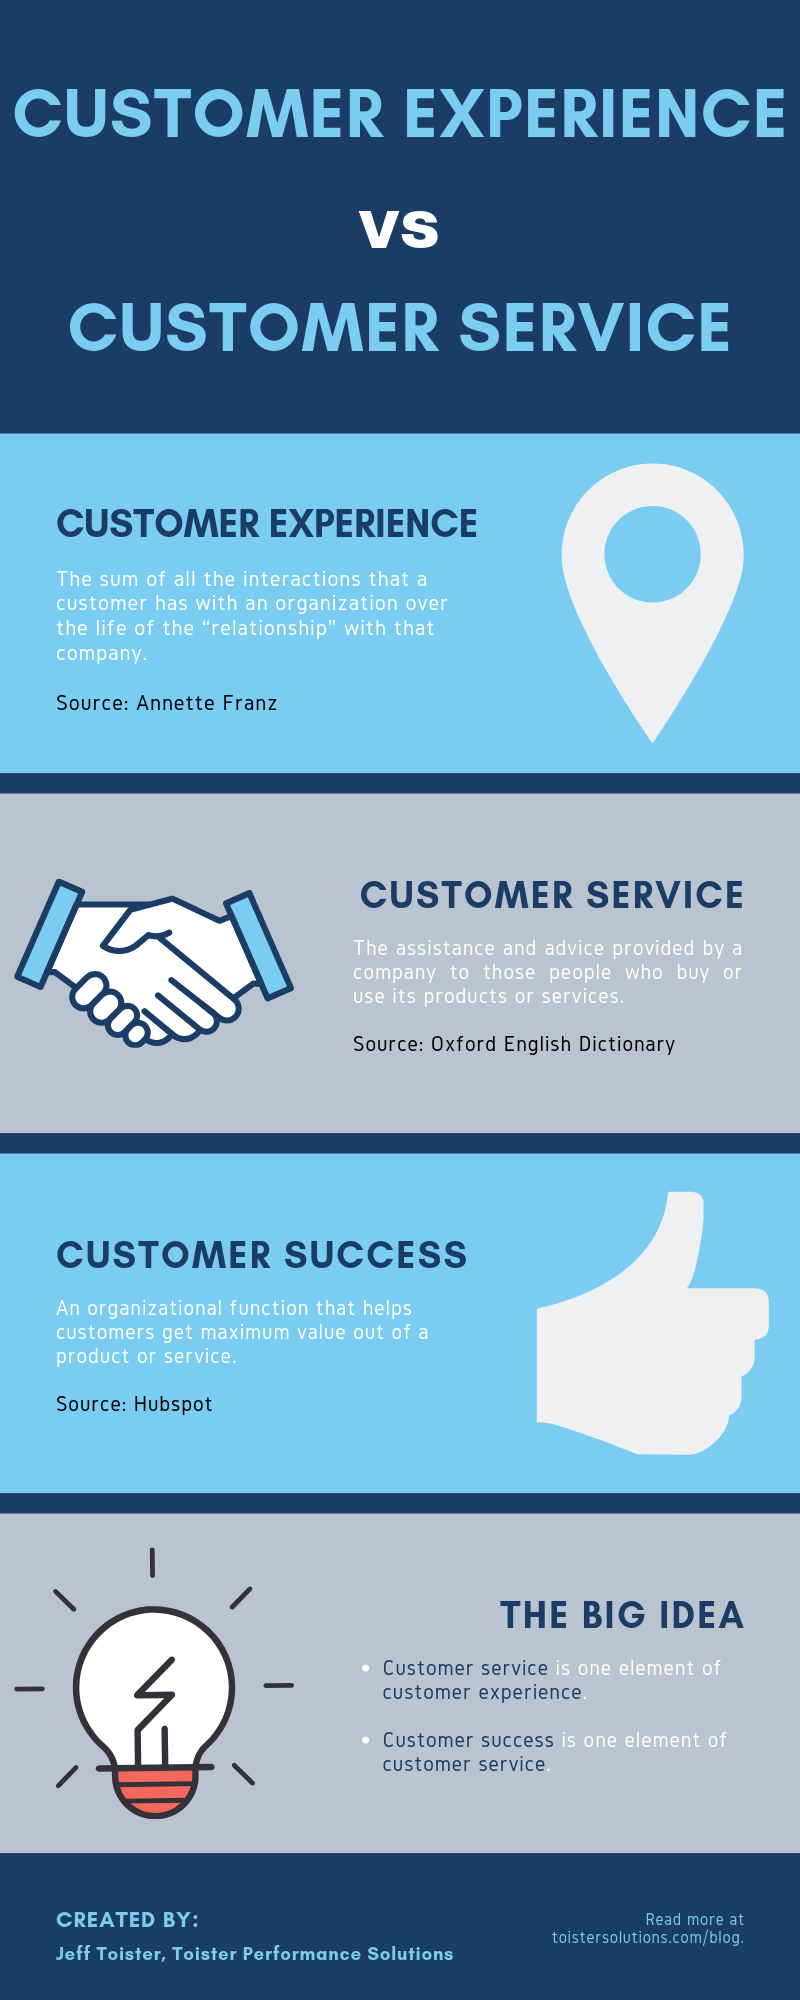 Inside Customer Service blog — Toister Performance Solutions, Inc